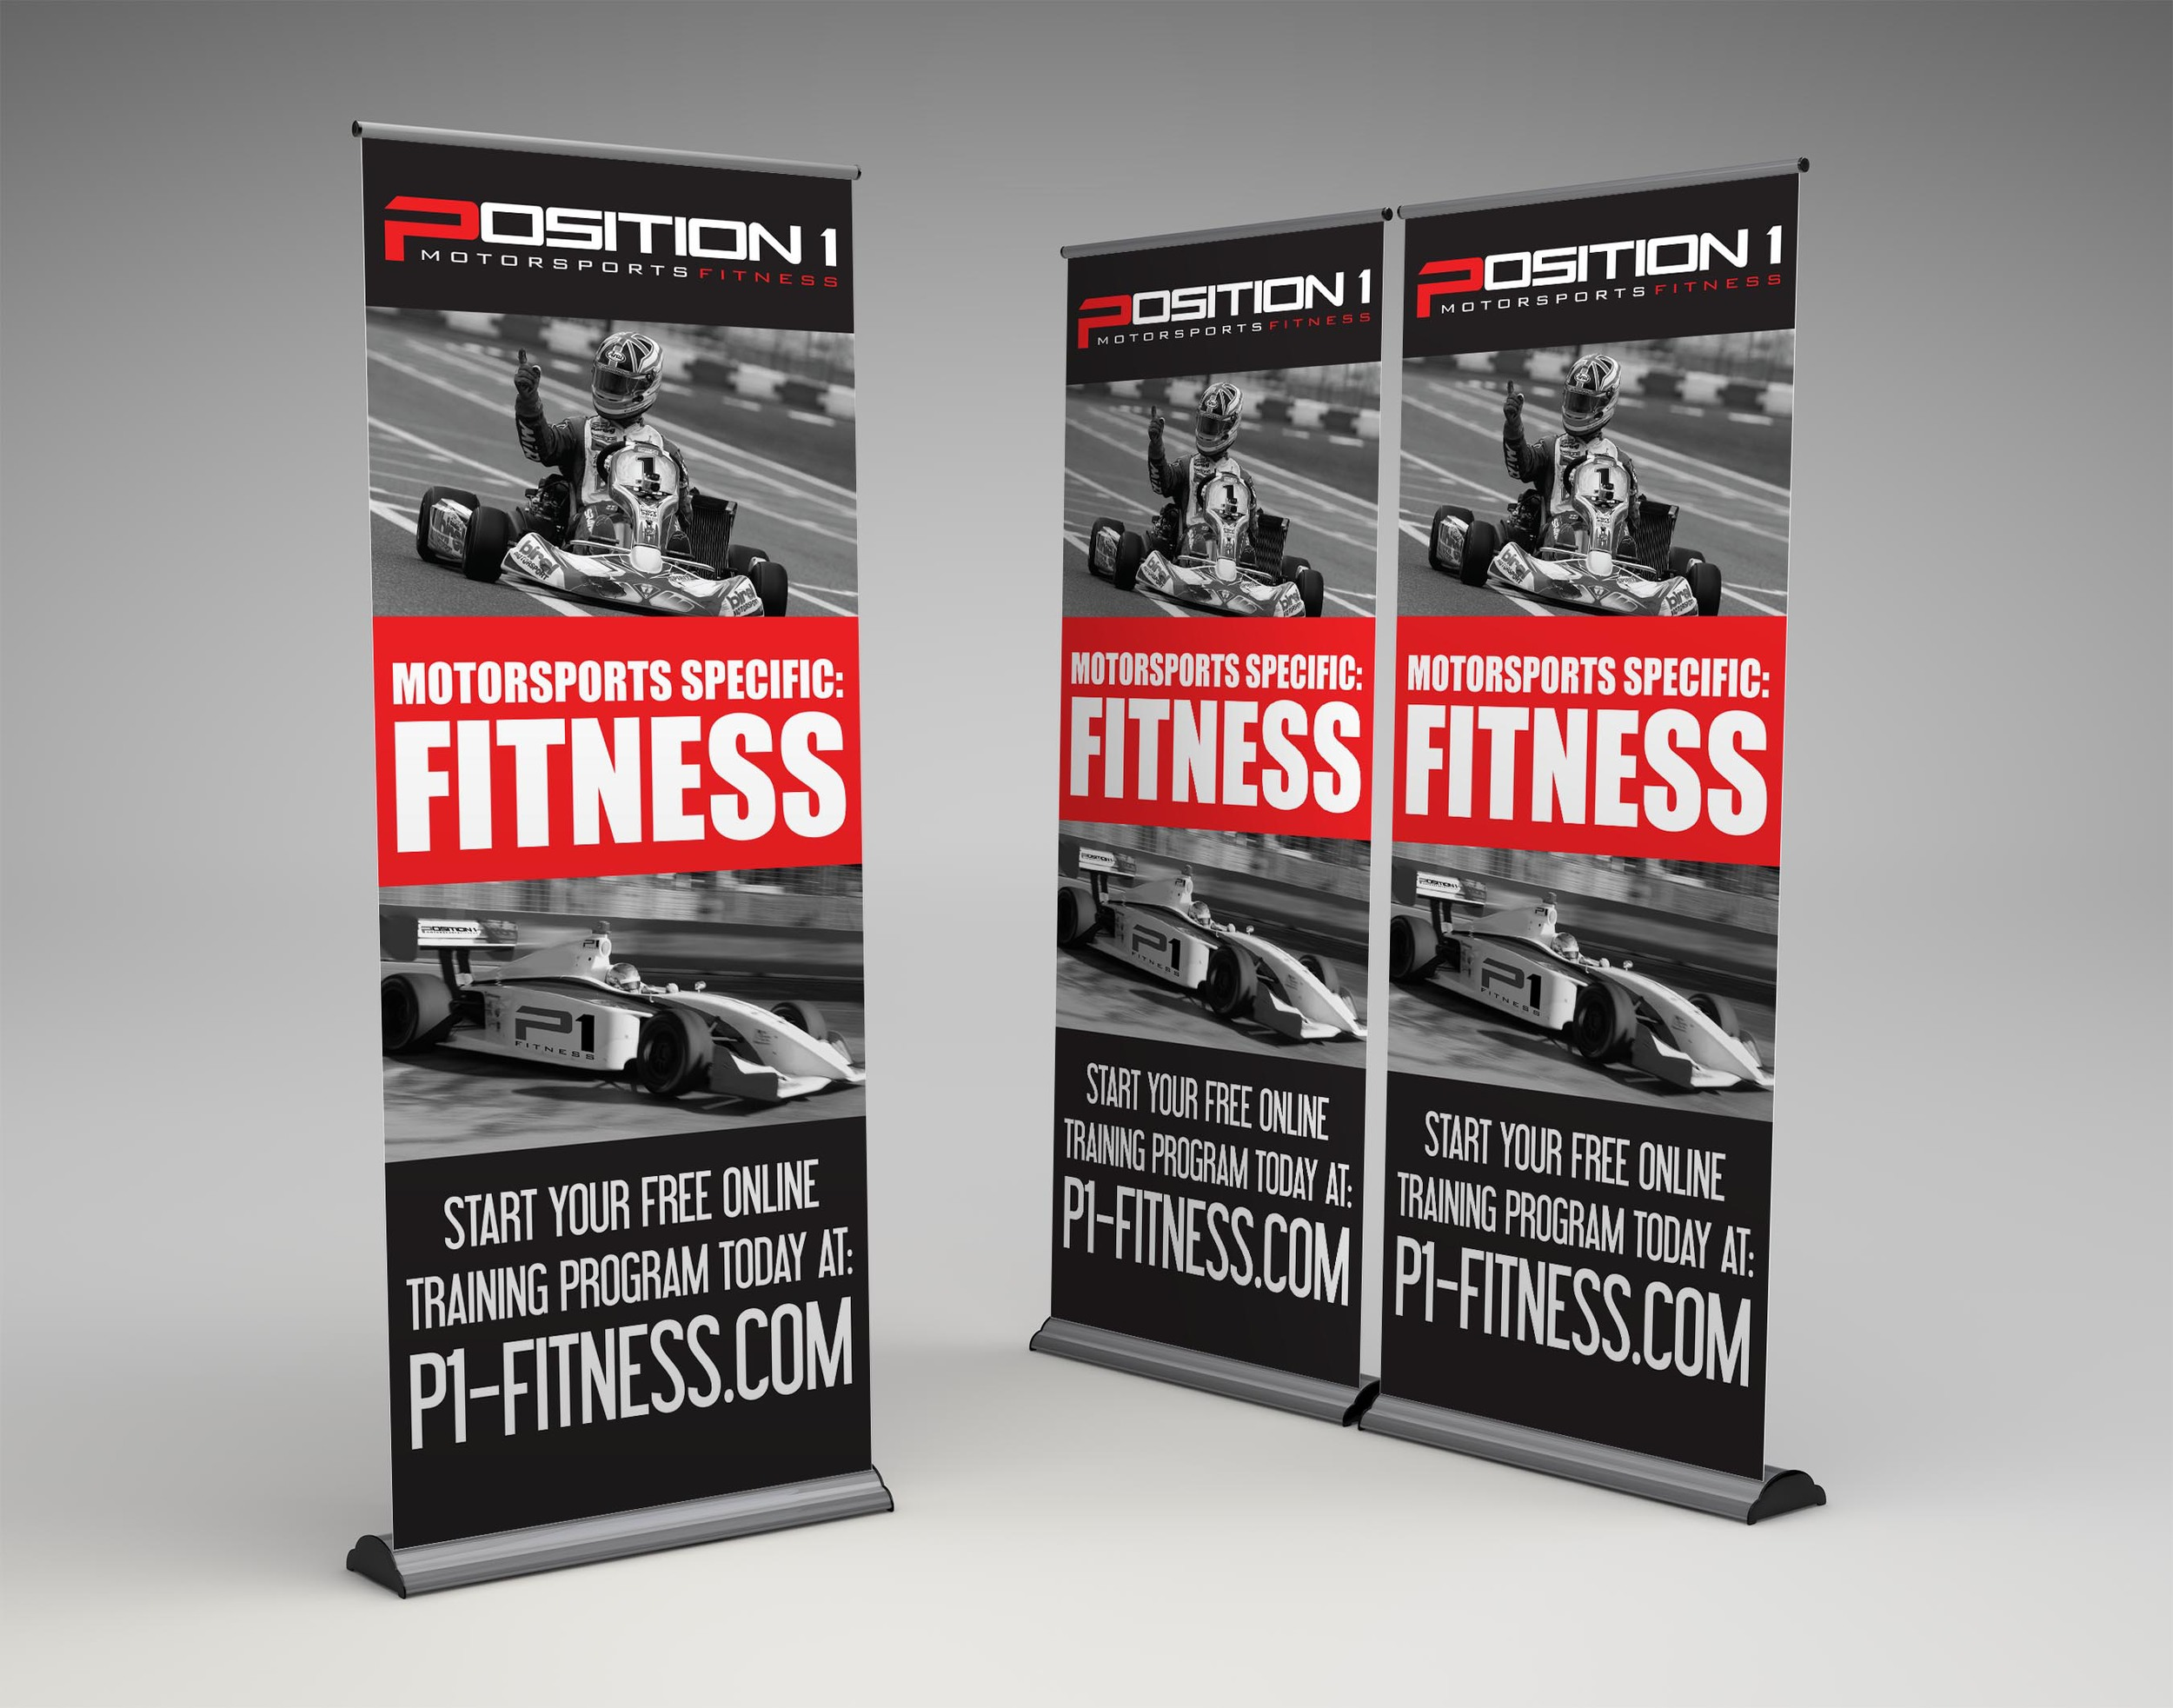 roll-up-banner-jim-russell-p1-fitness-2.jpg